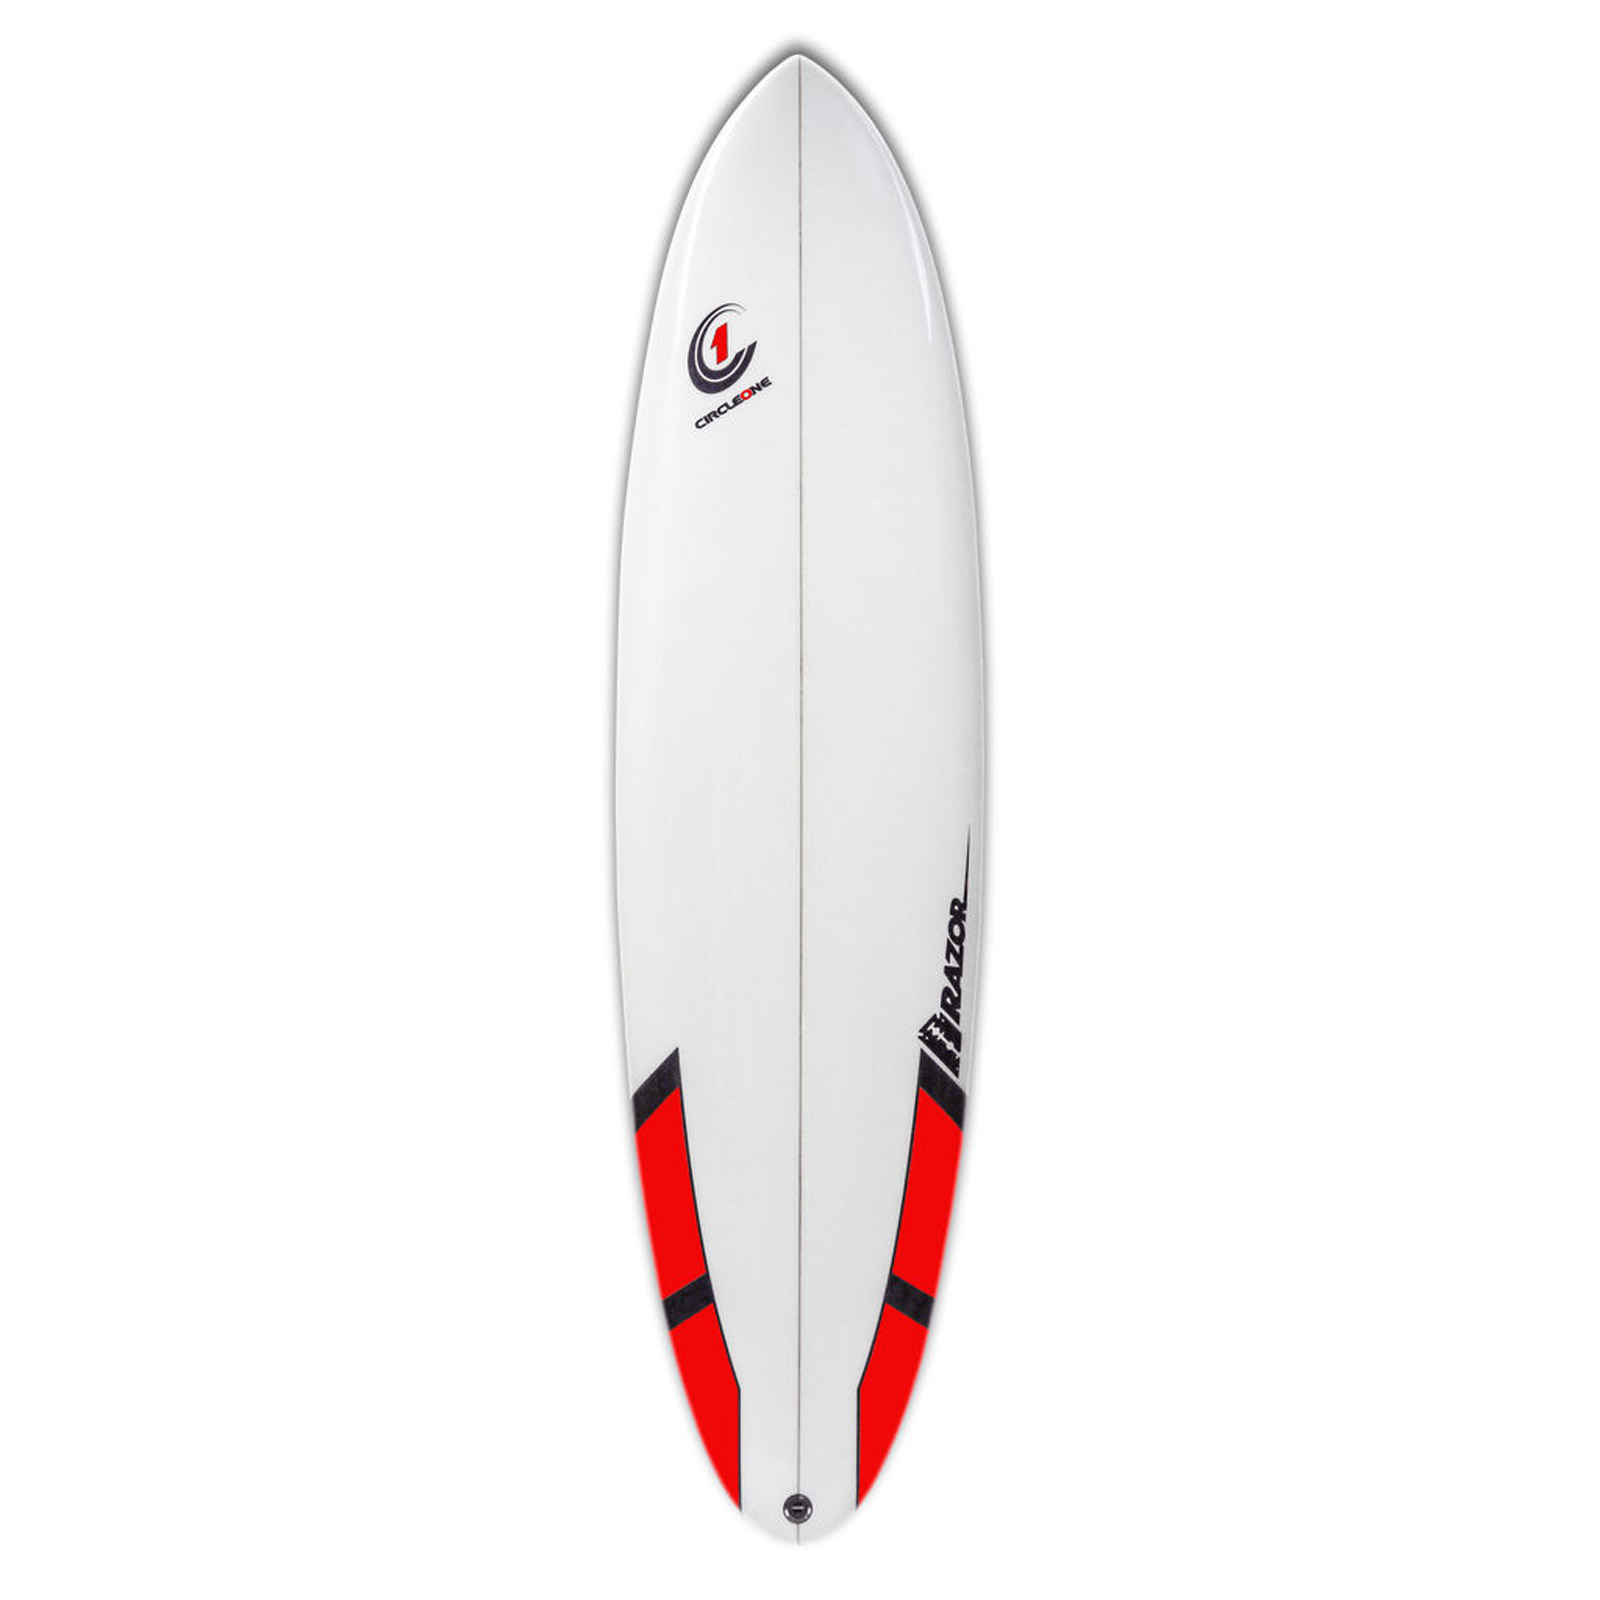 7ft Razor Surfboard with Round Tail - Matt Finish